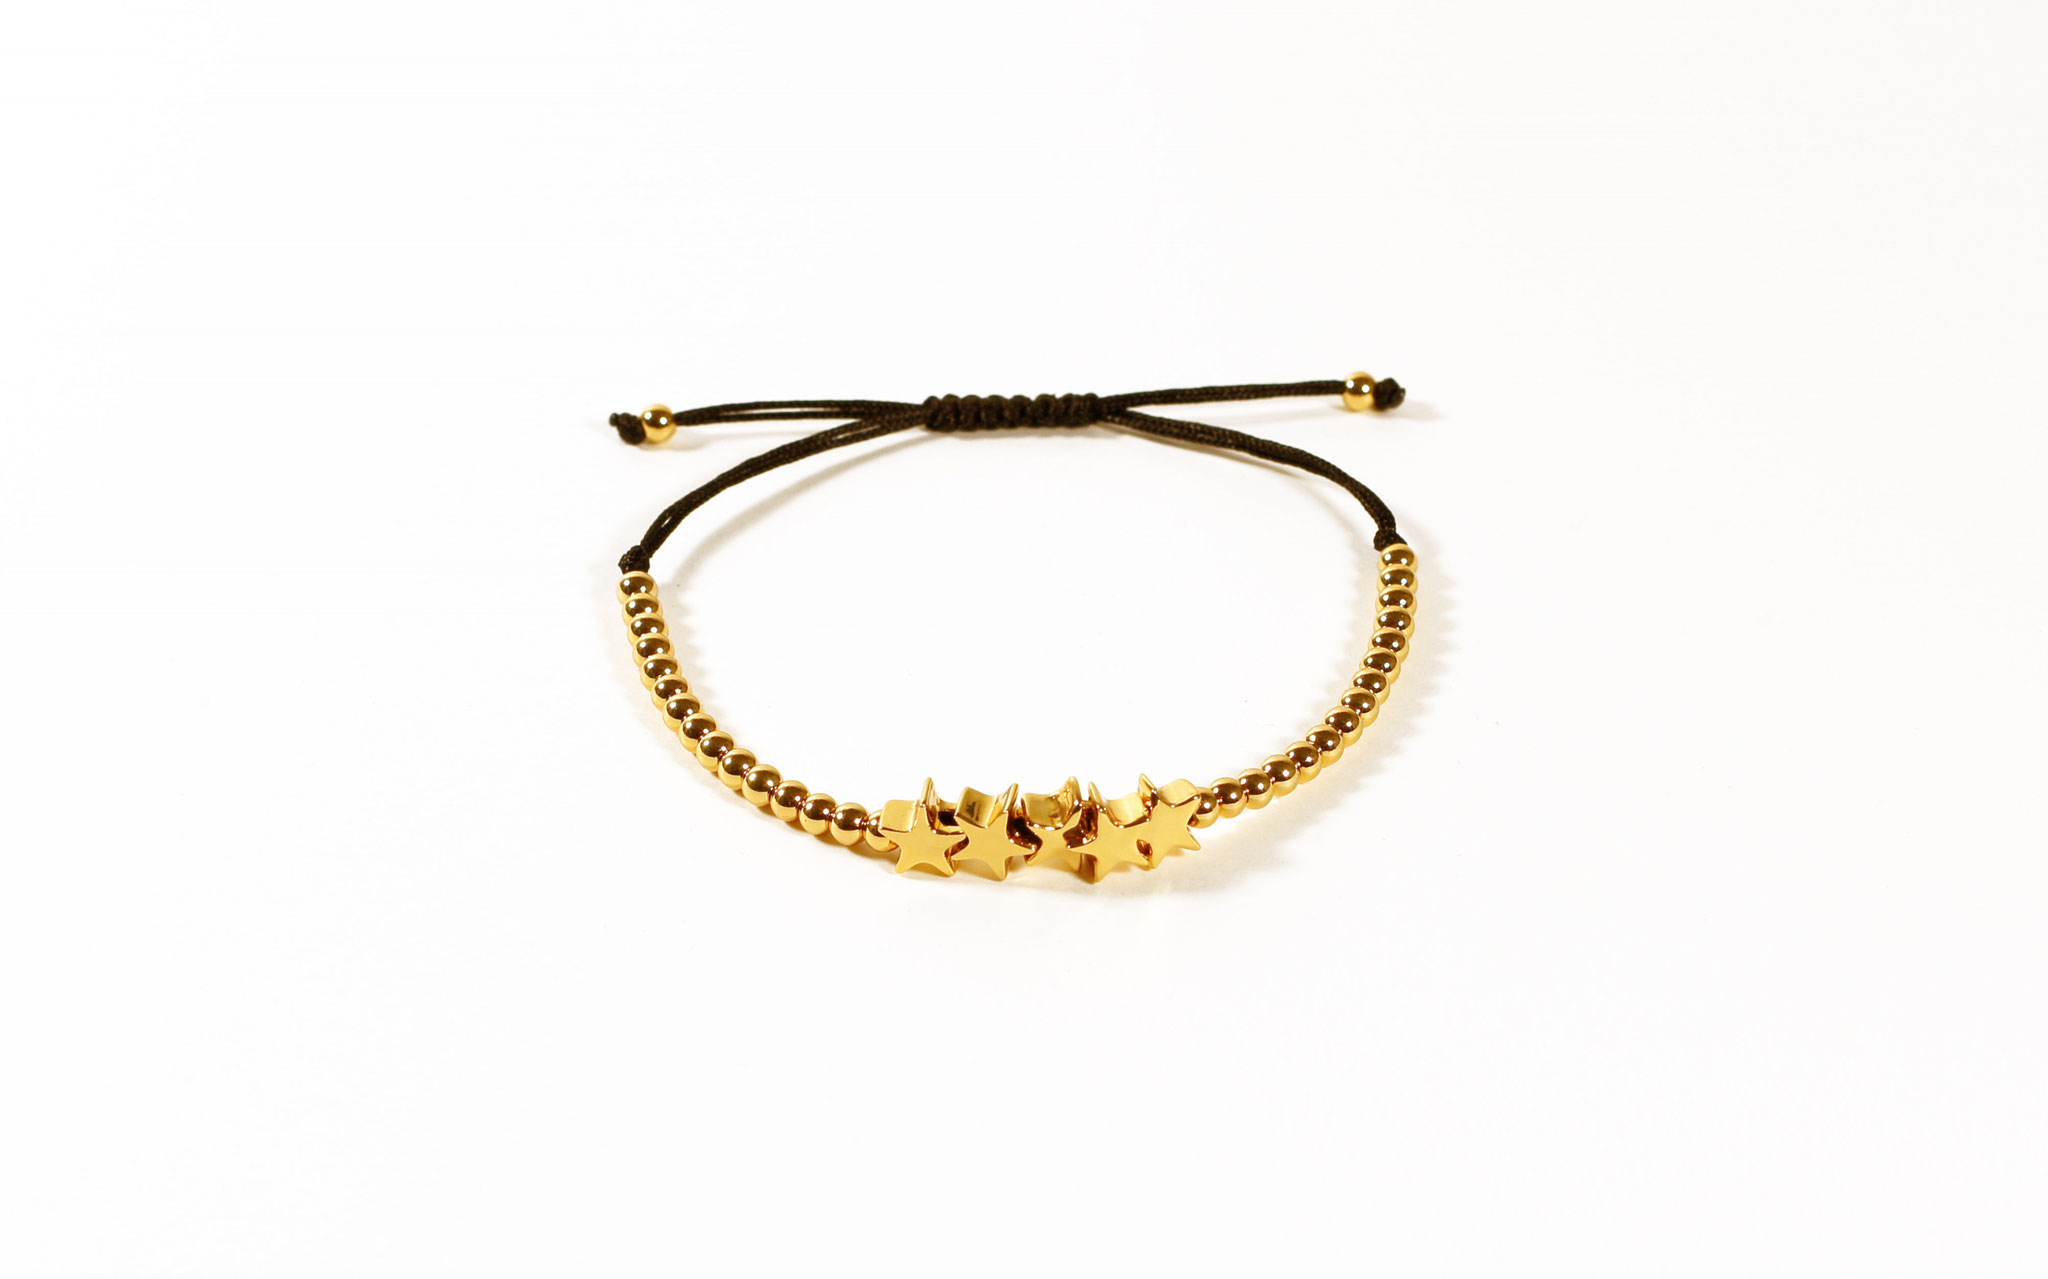 lyst jewelry gold karat bracelet florentine bucci gallery in carolina metallic